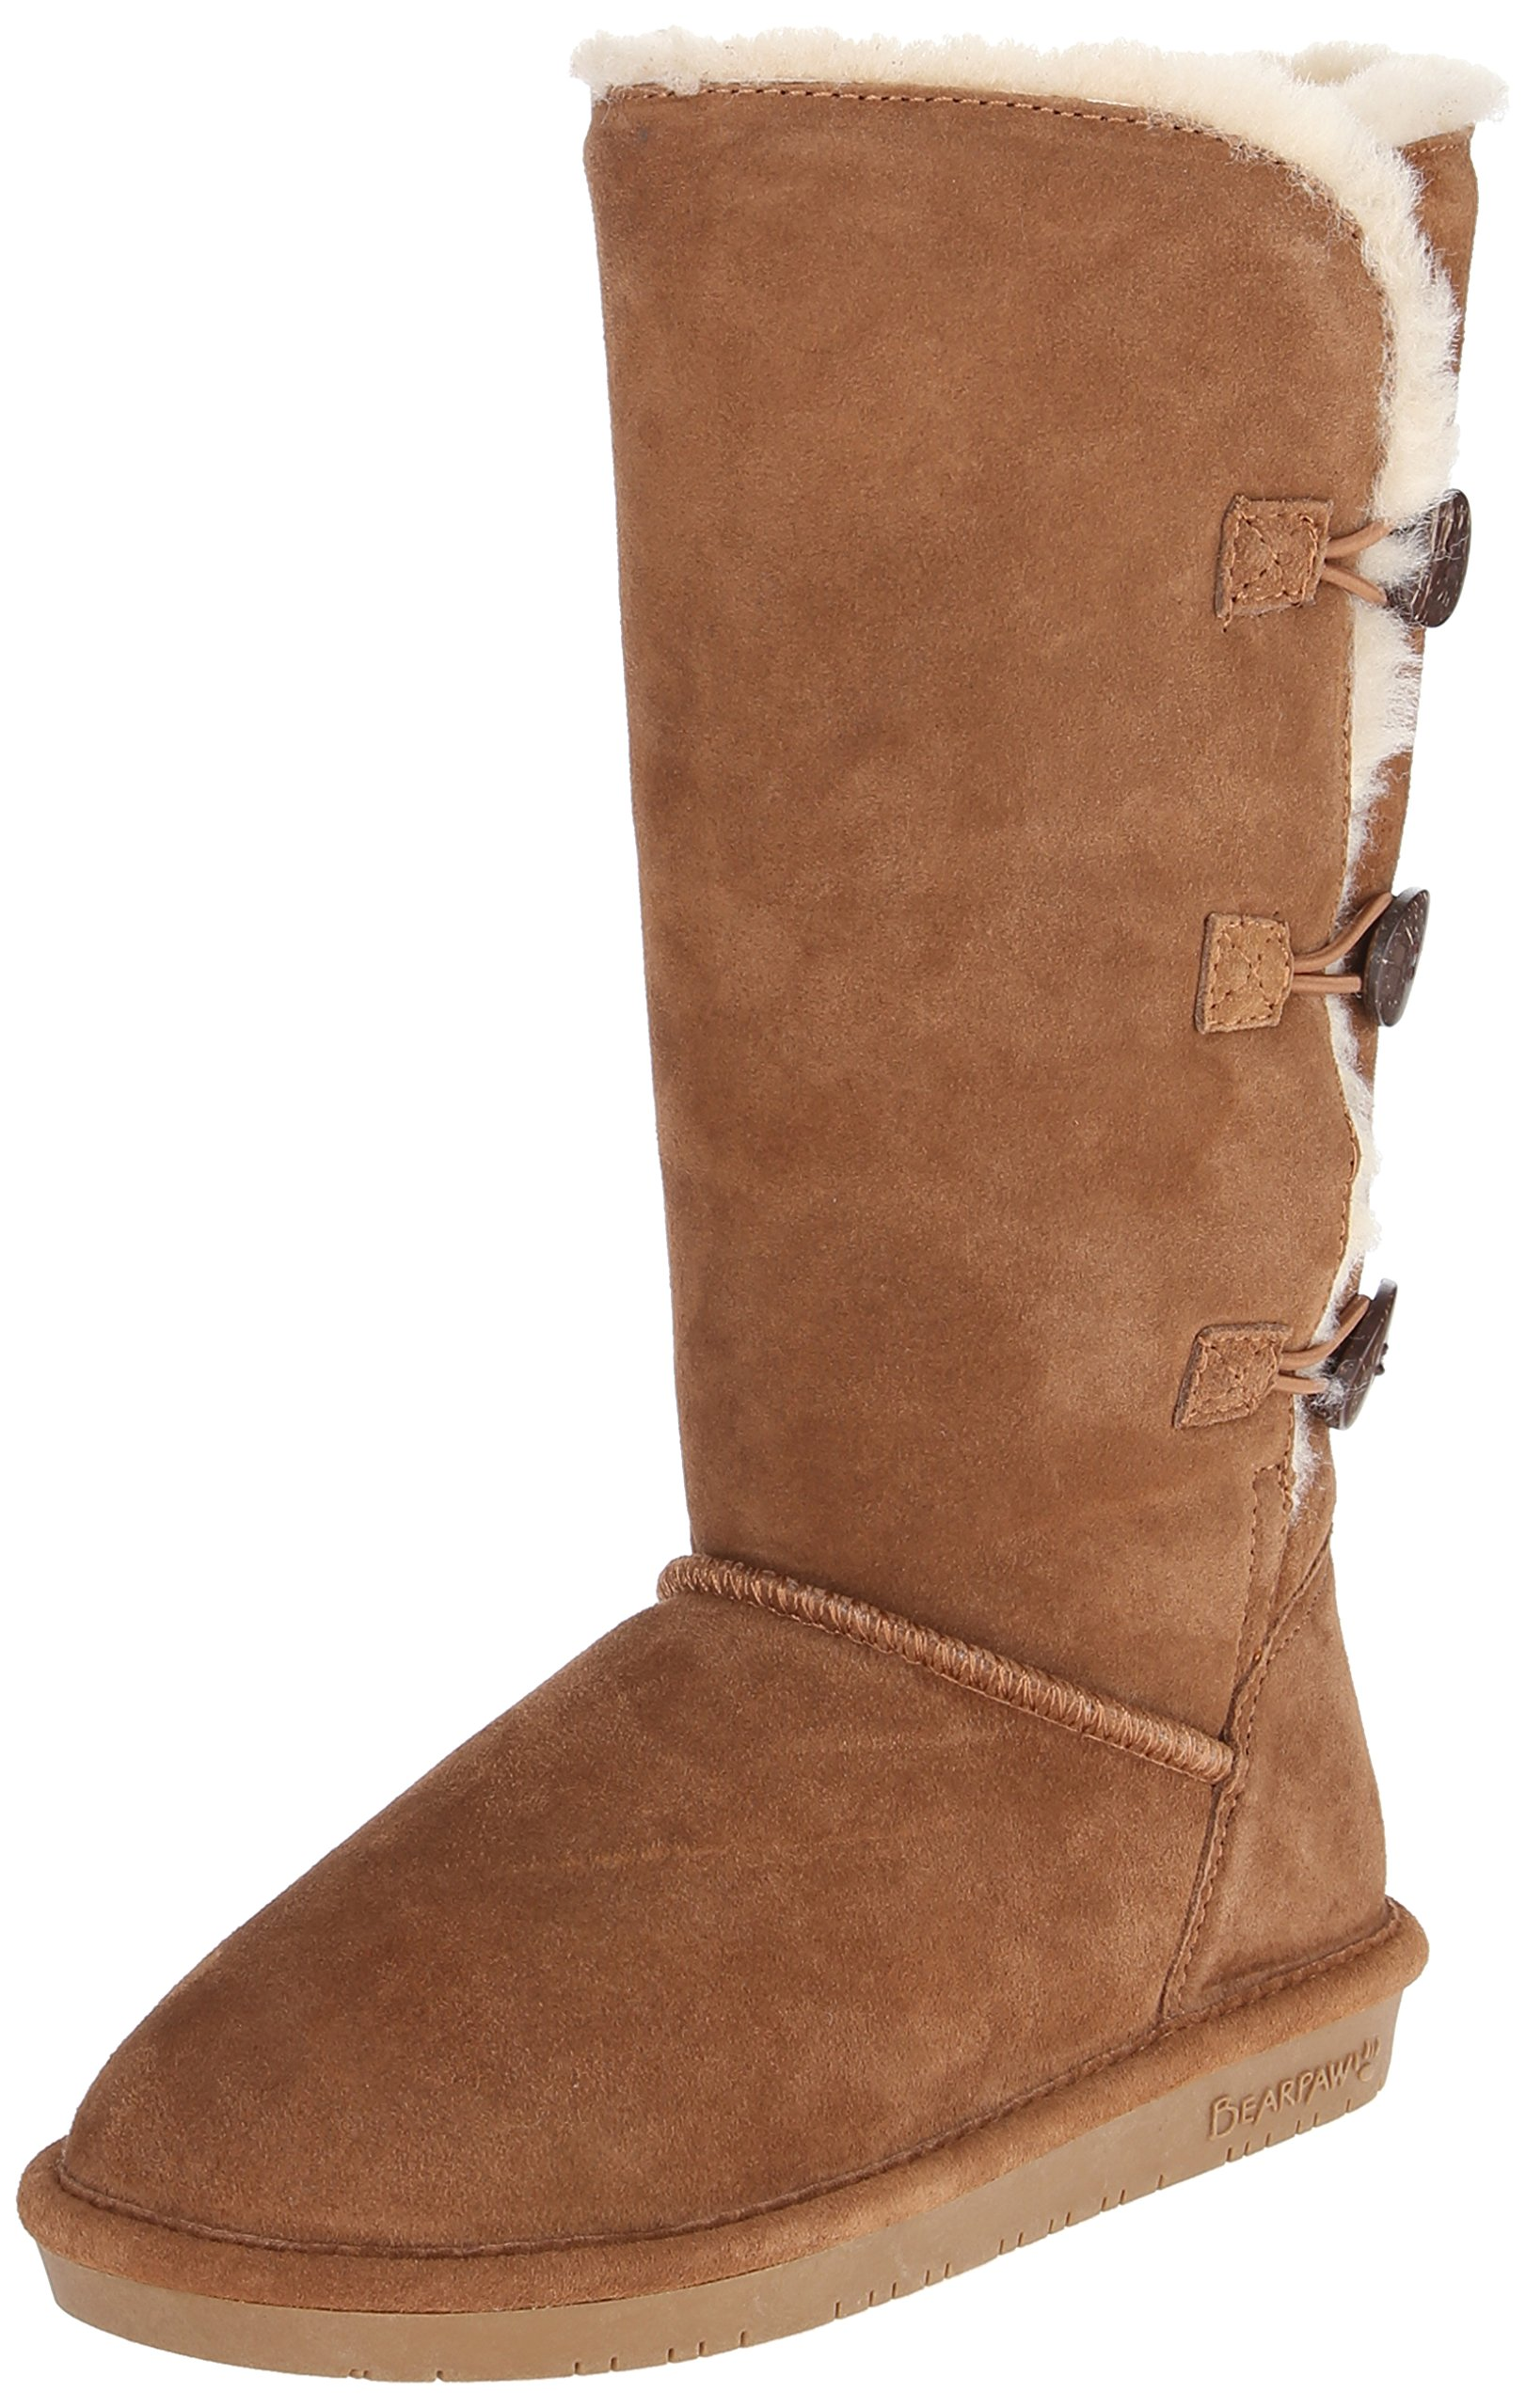 Bearpaw Women's Lauren Snow Boot (39 M EU/8 B(M) US, Hickory)